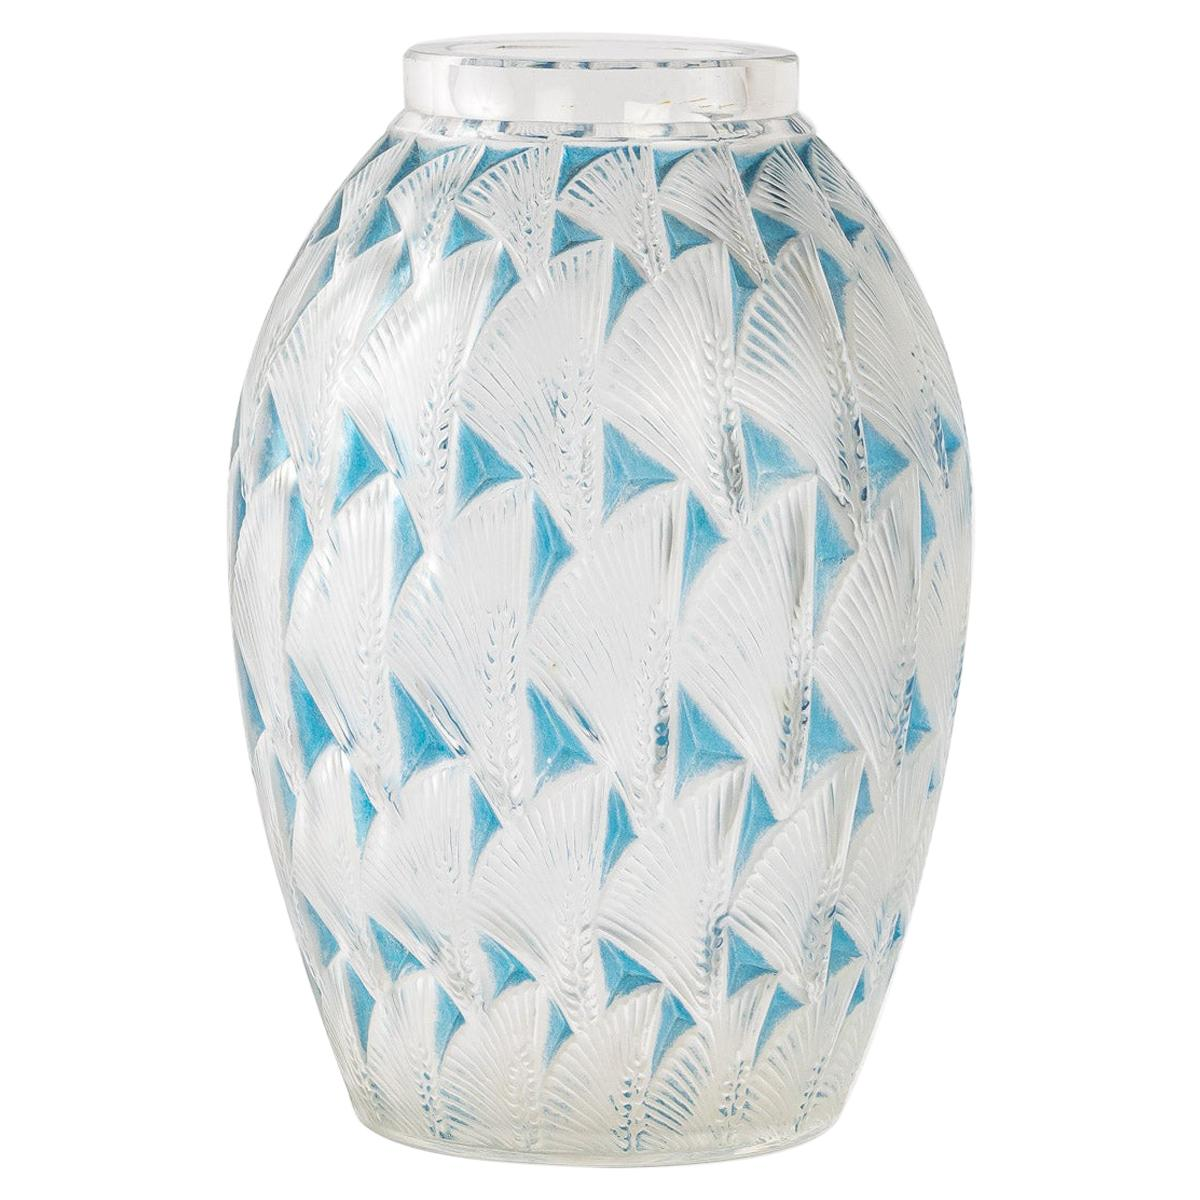 1932 Rene Lalique Grignon Vase in Frosted Glass with Blue Patina